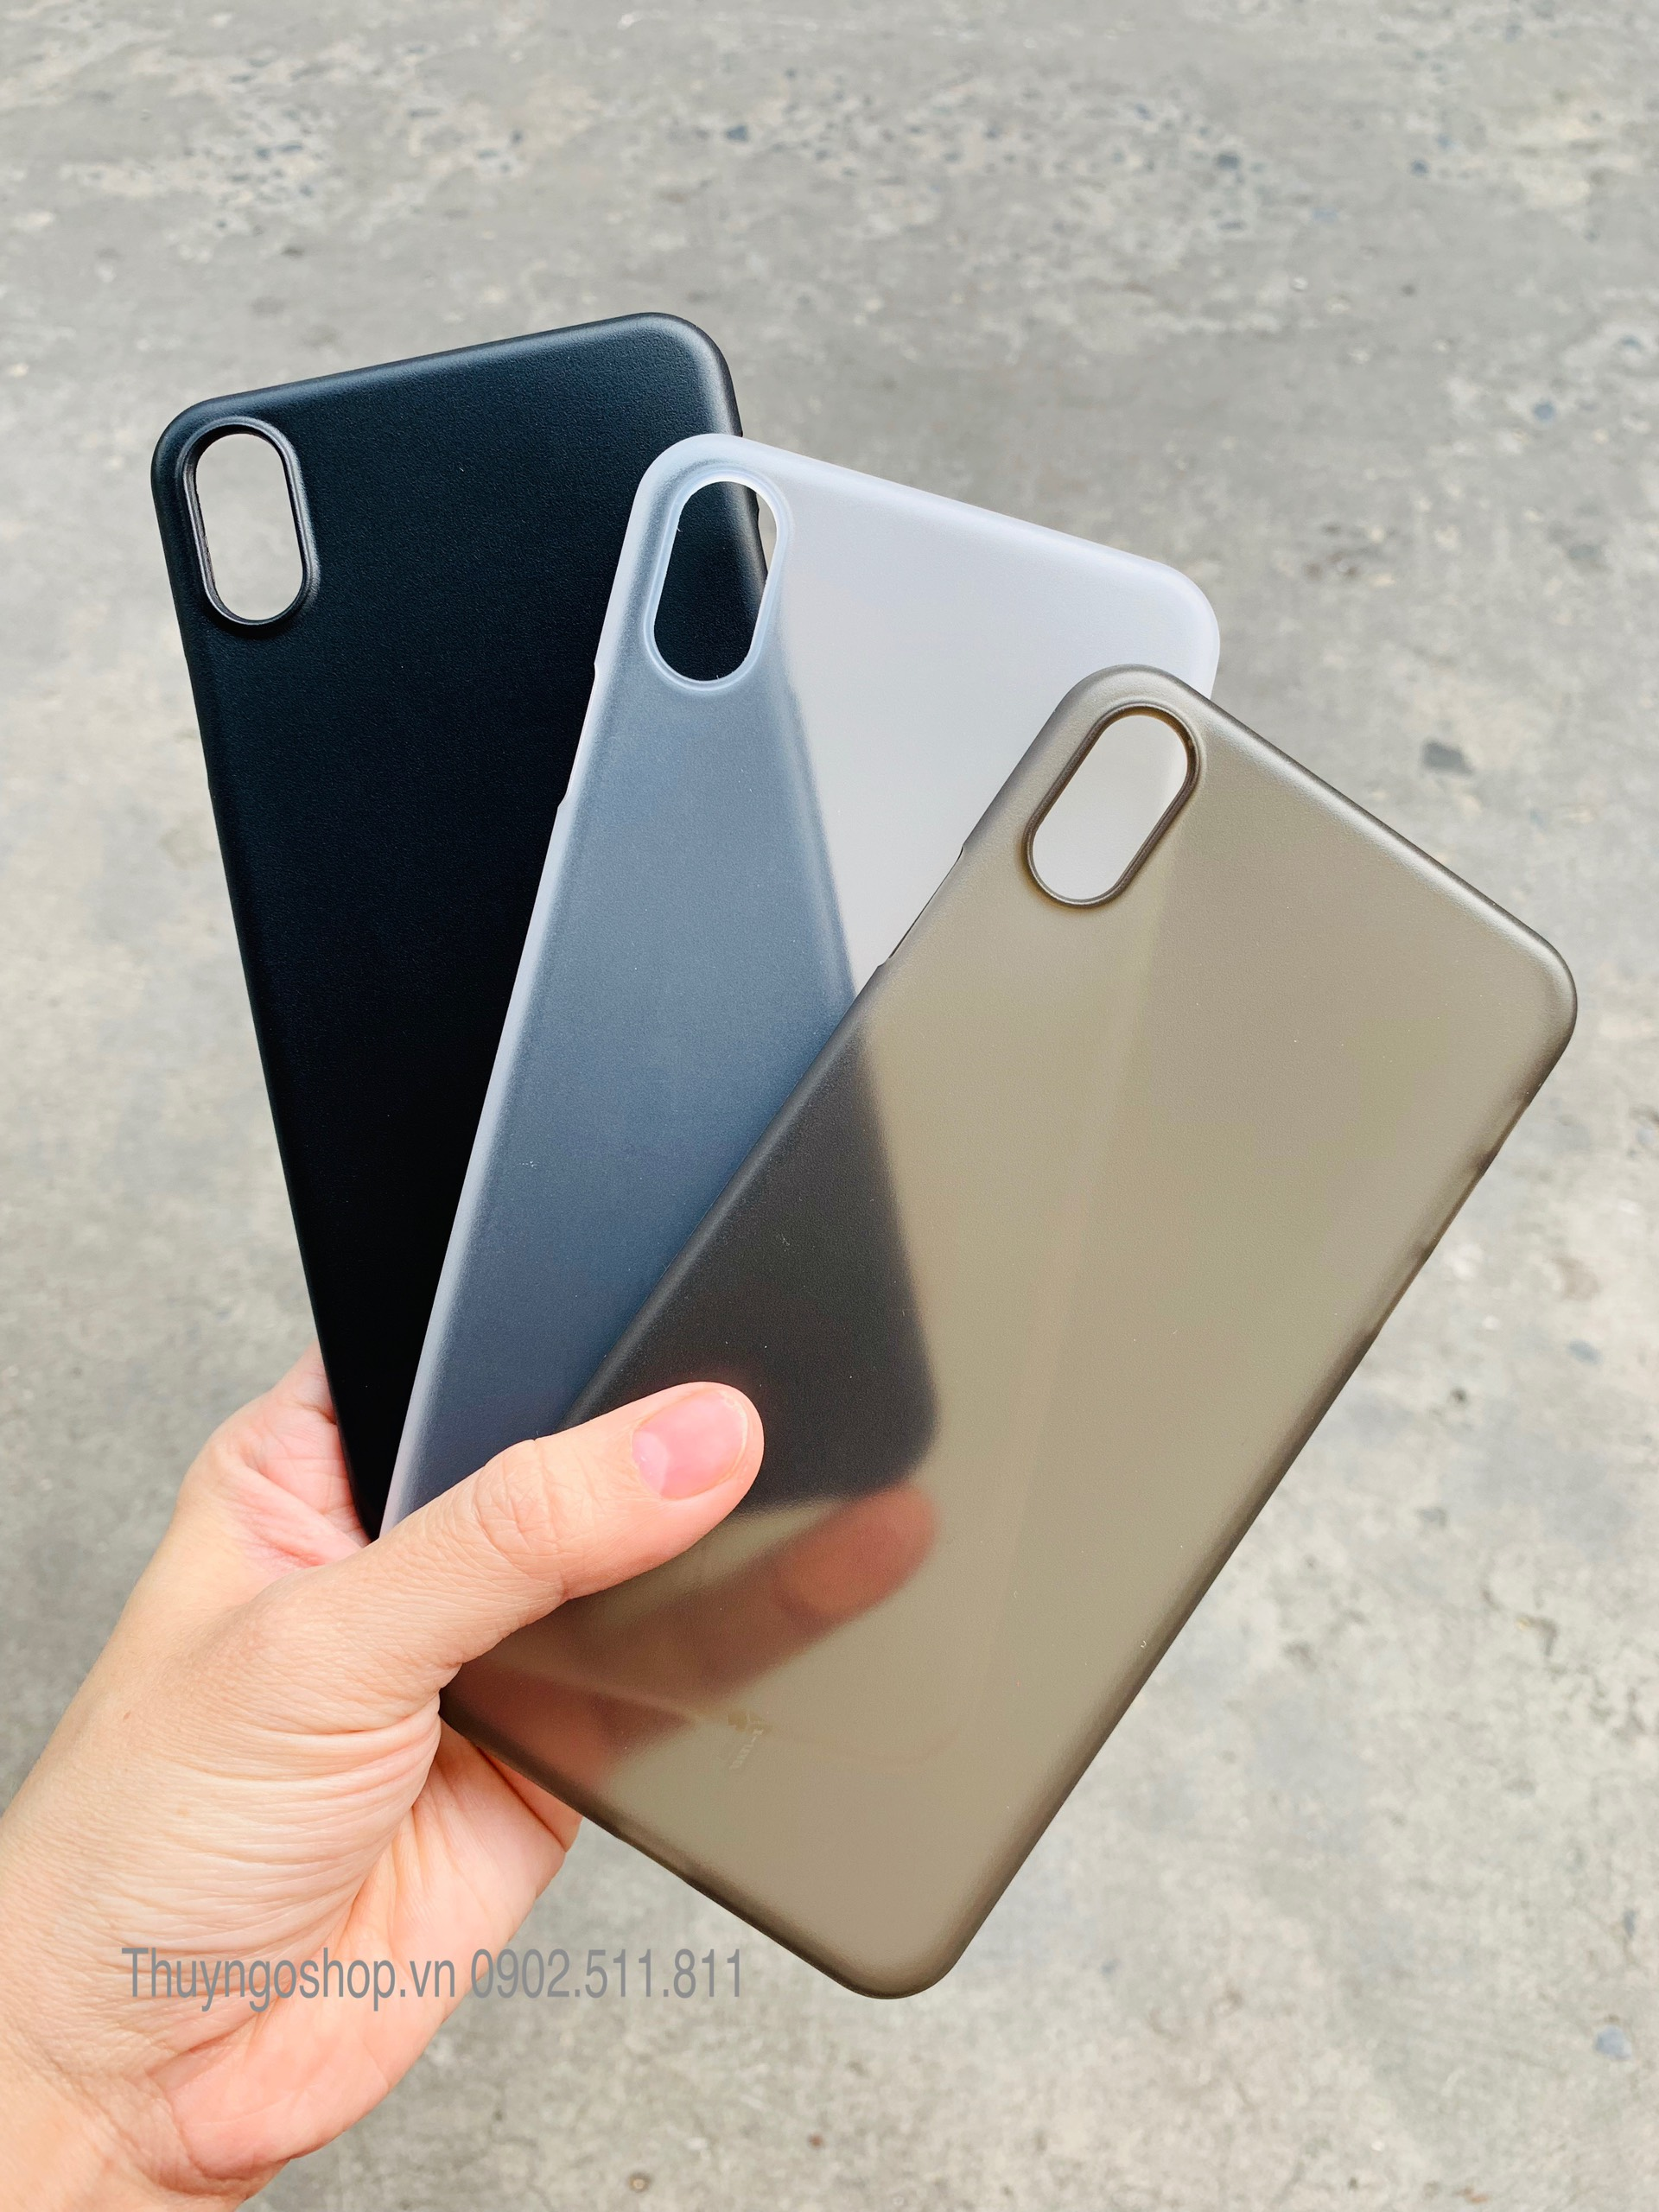 Iphone X / Xs / Xs Max Ốp lưng nhám siêu mỏng 0.18mm X-Level